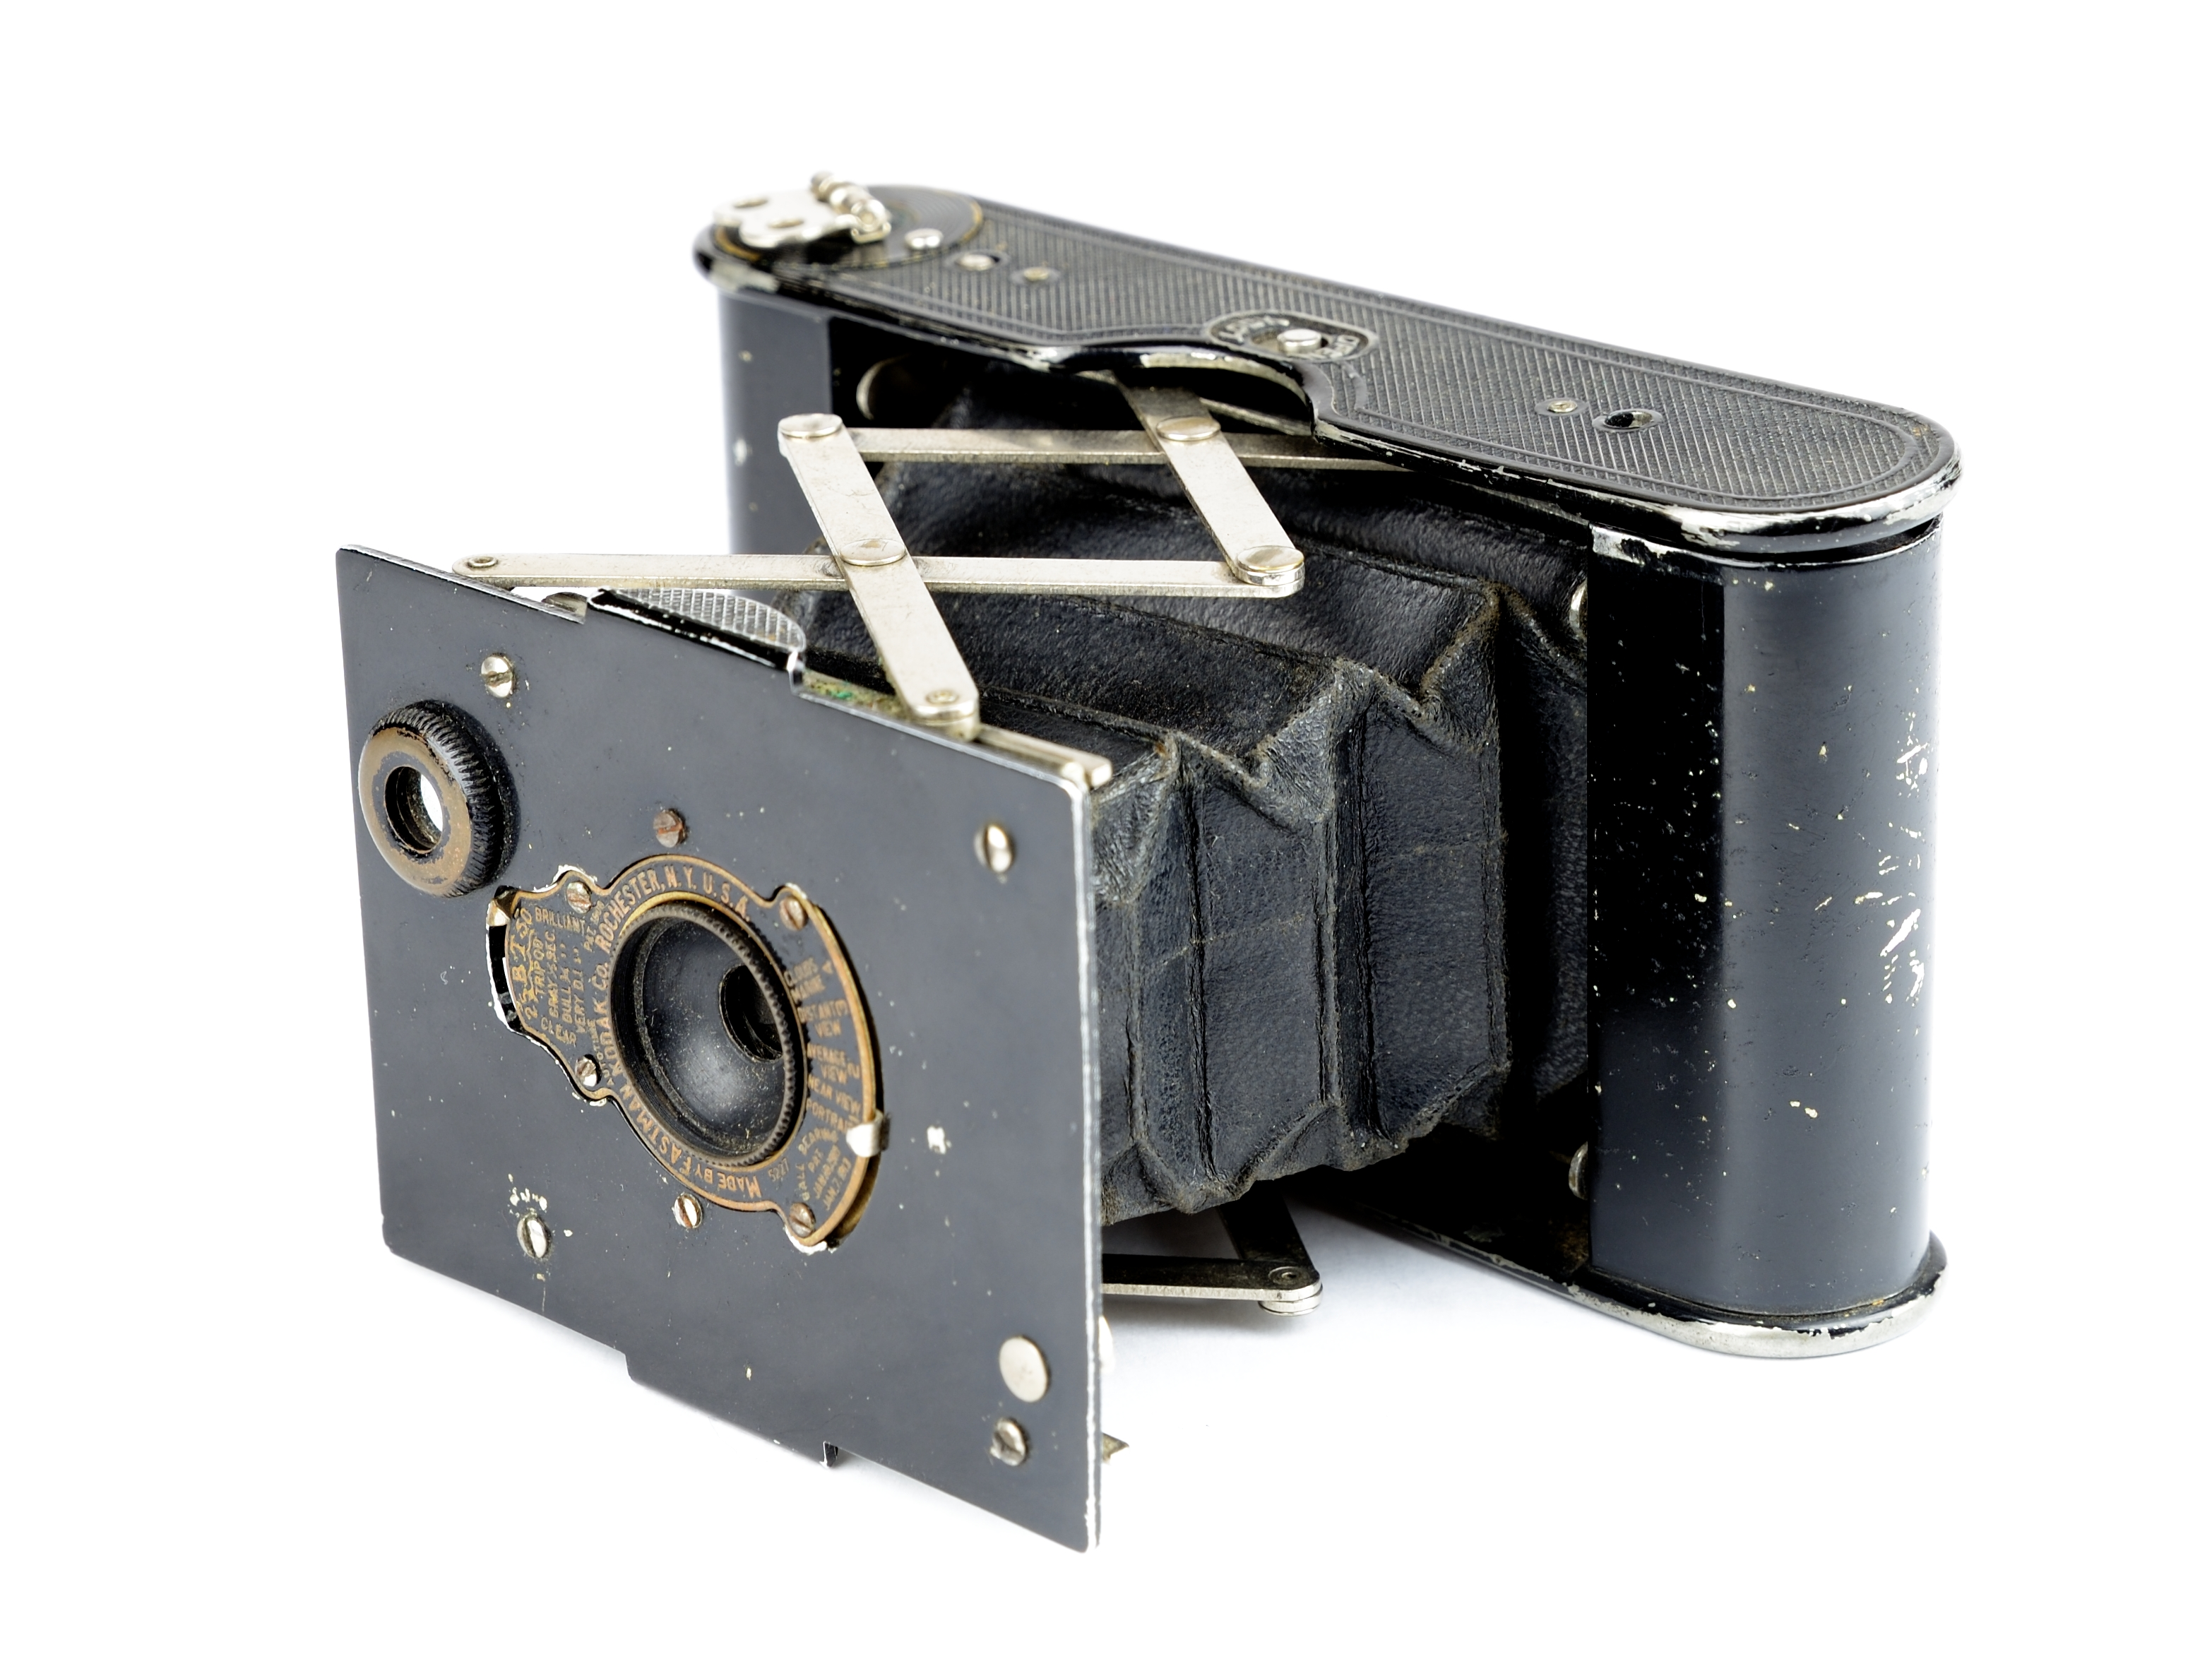 CollectiBlend: classic, collectible and old cameras price guide Appareil photo ancien kodak